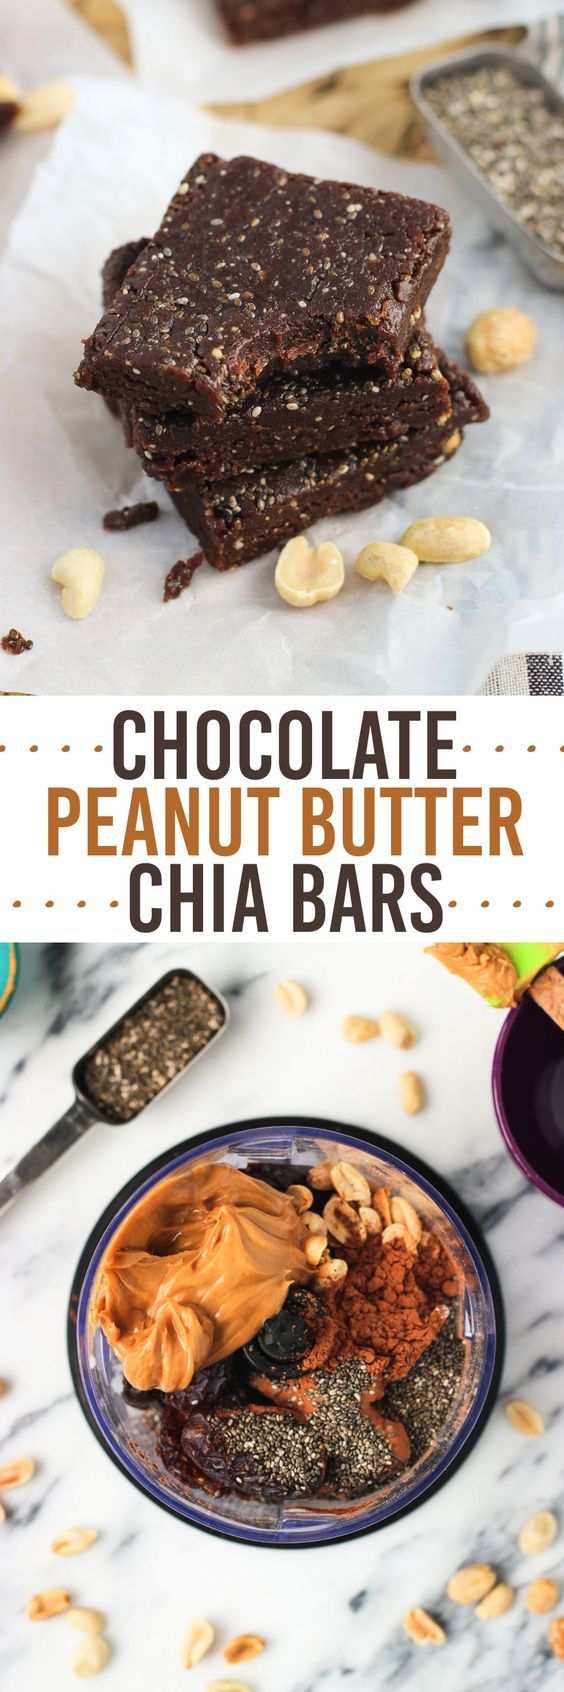 Chocolate Peanut Butter Chia Bars - an easy five-ingredient healthy snack recipe. These bars are no-bake, naturally sweetened kids snack